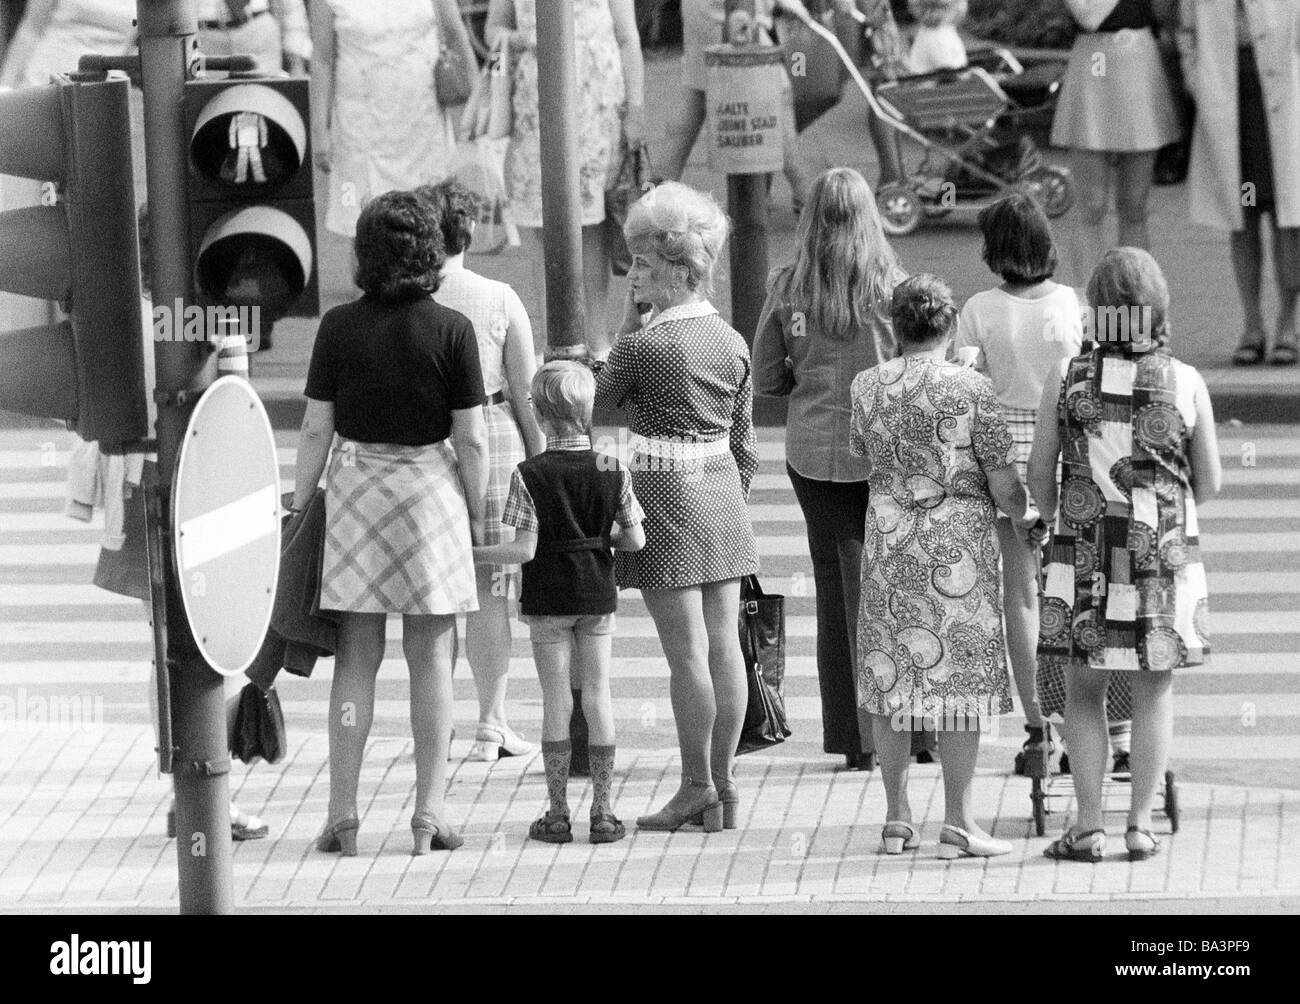 Seventies, black and white photo, people on shopping expedition, several women and a boy waiting at a traffic light, - Stock Image